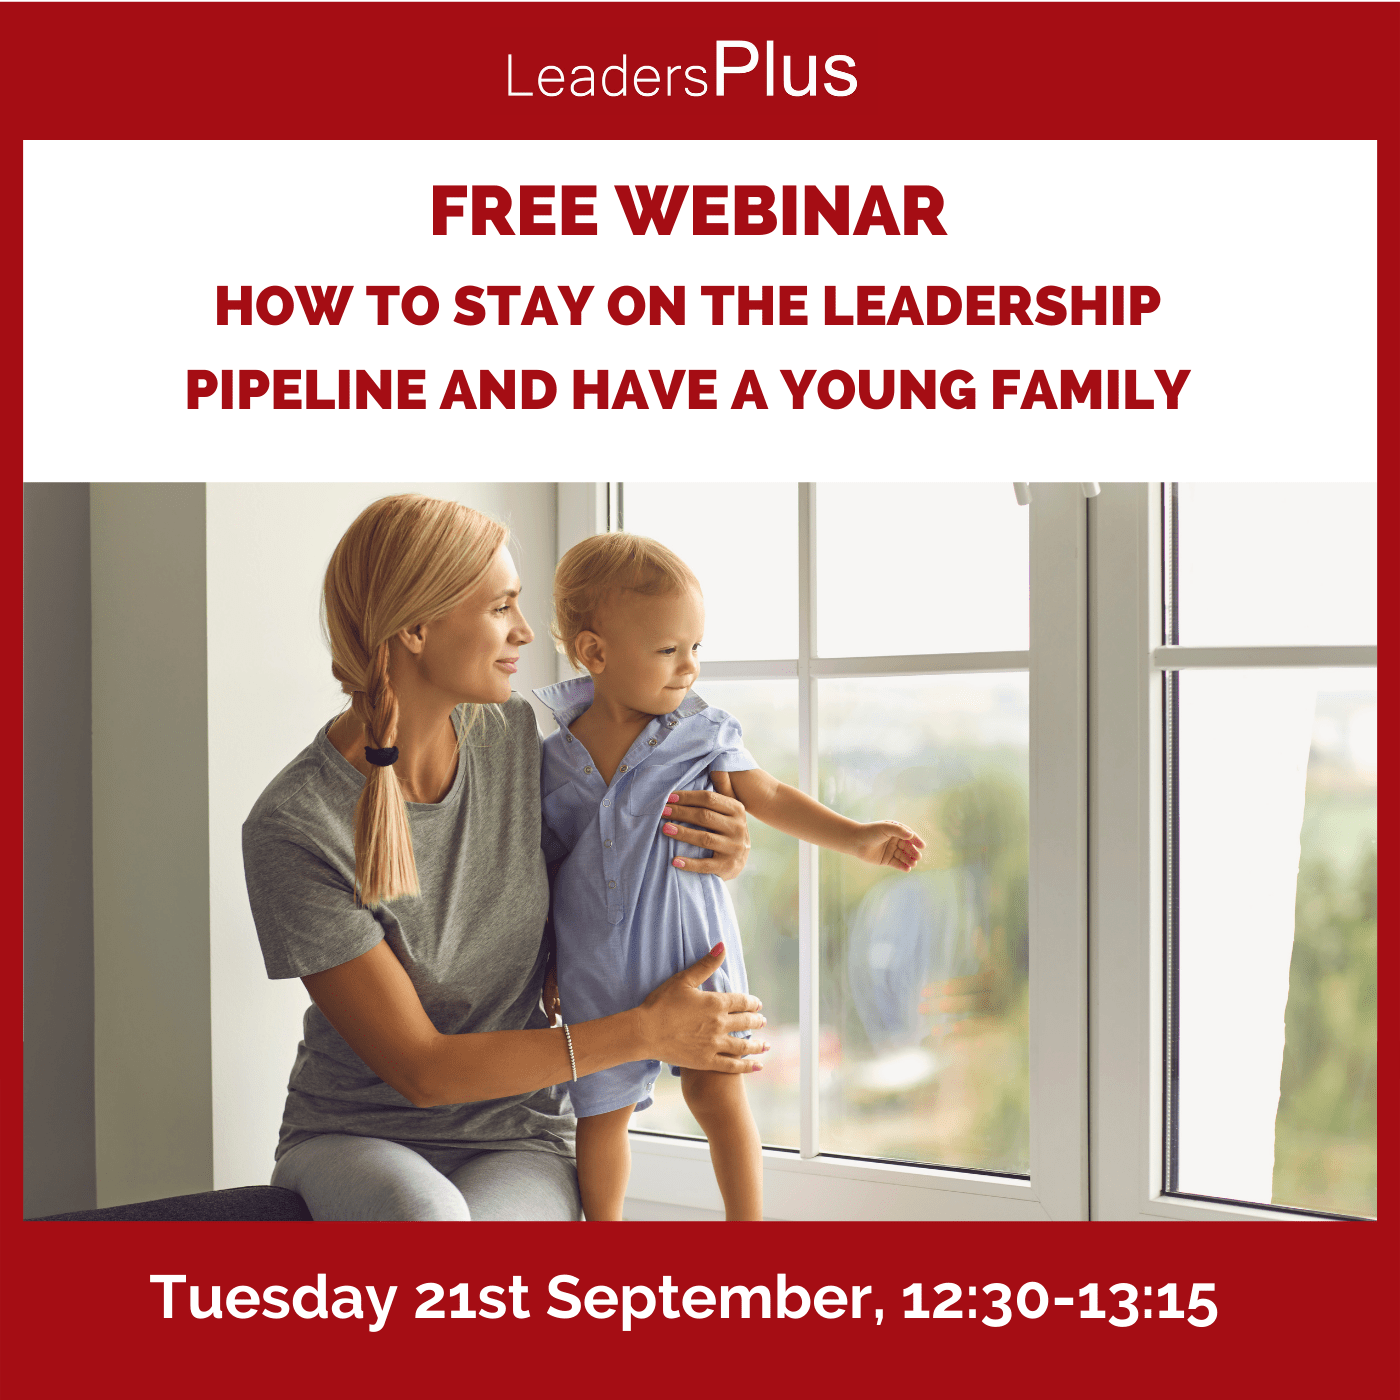 Free Webinar: How To Stay On The Leadership Pipeline And Have A Young Family